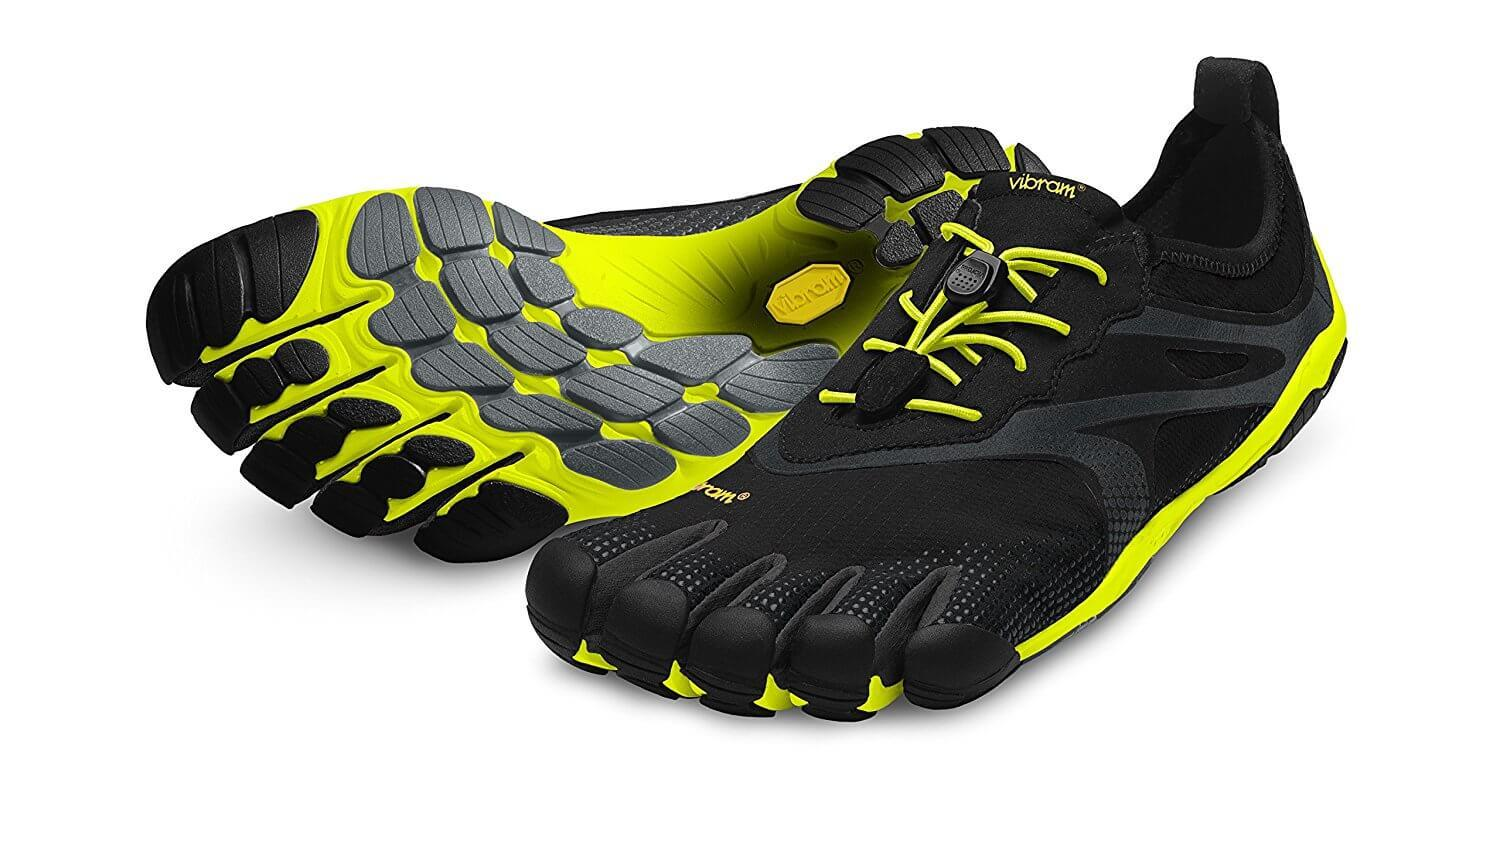 Running Shoes Vibram Five Fingers Review